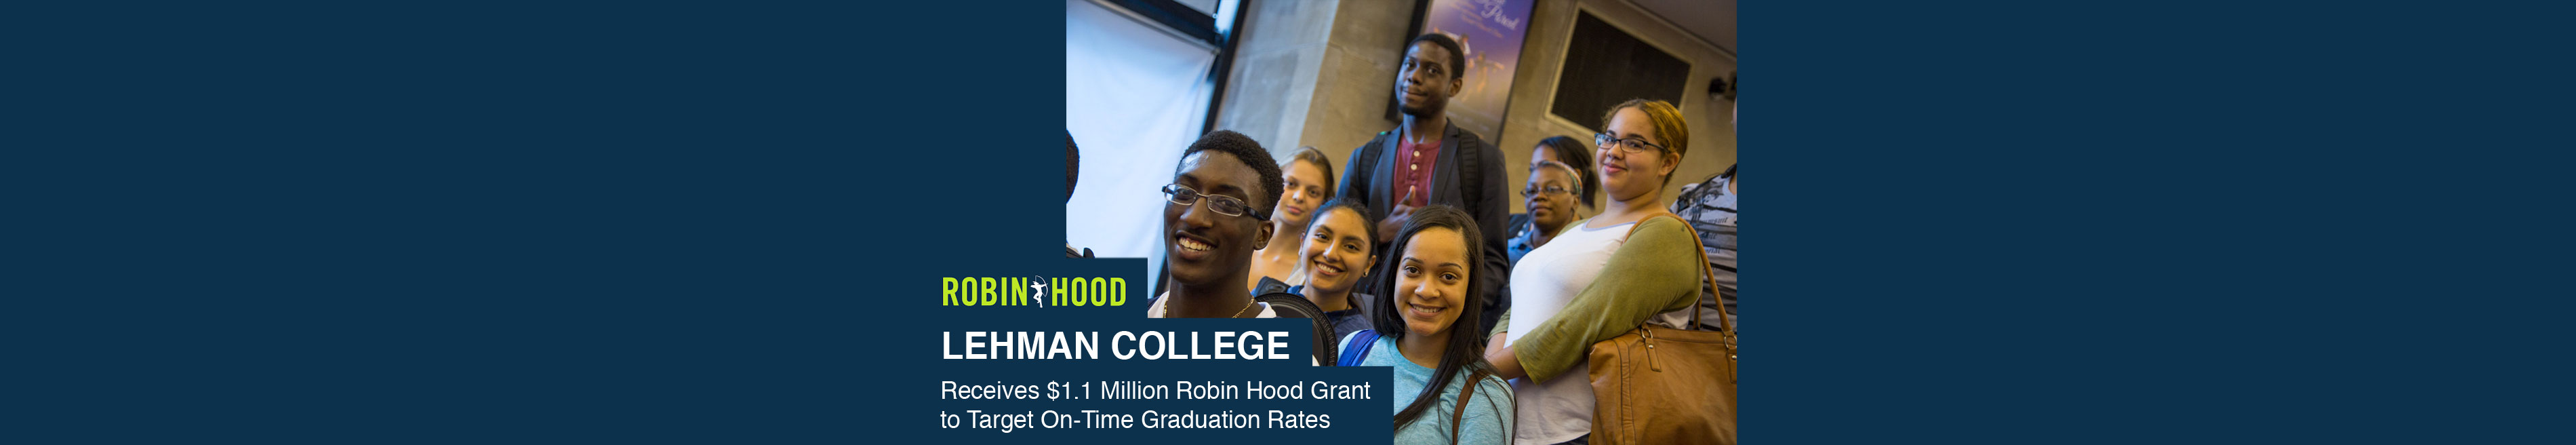 Lehman College Receives Robin Hood Grant to Target On-Time Graduation Rates